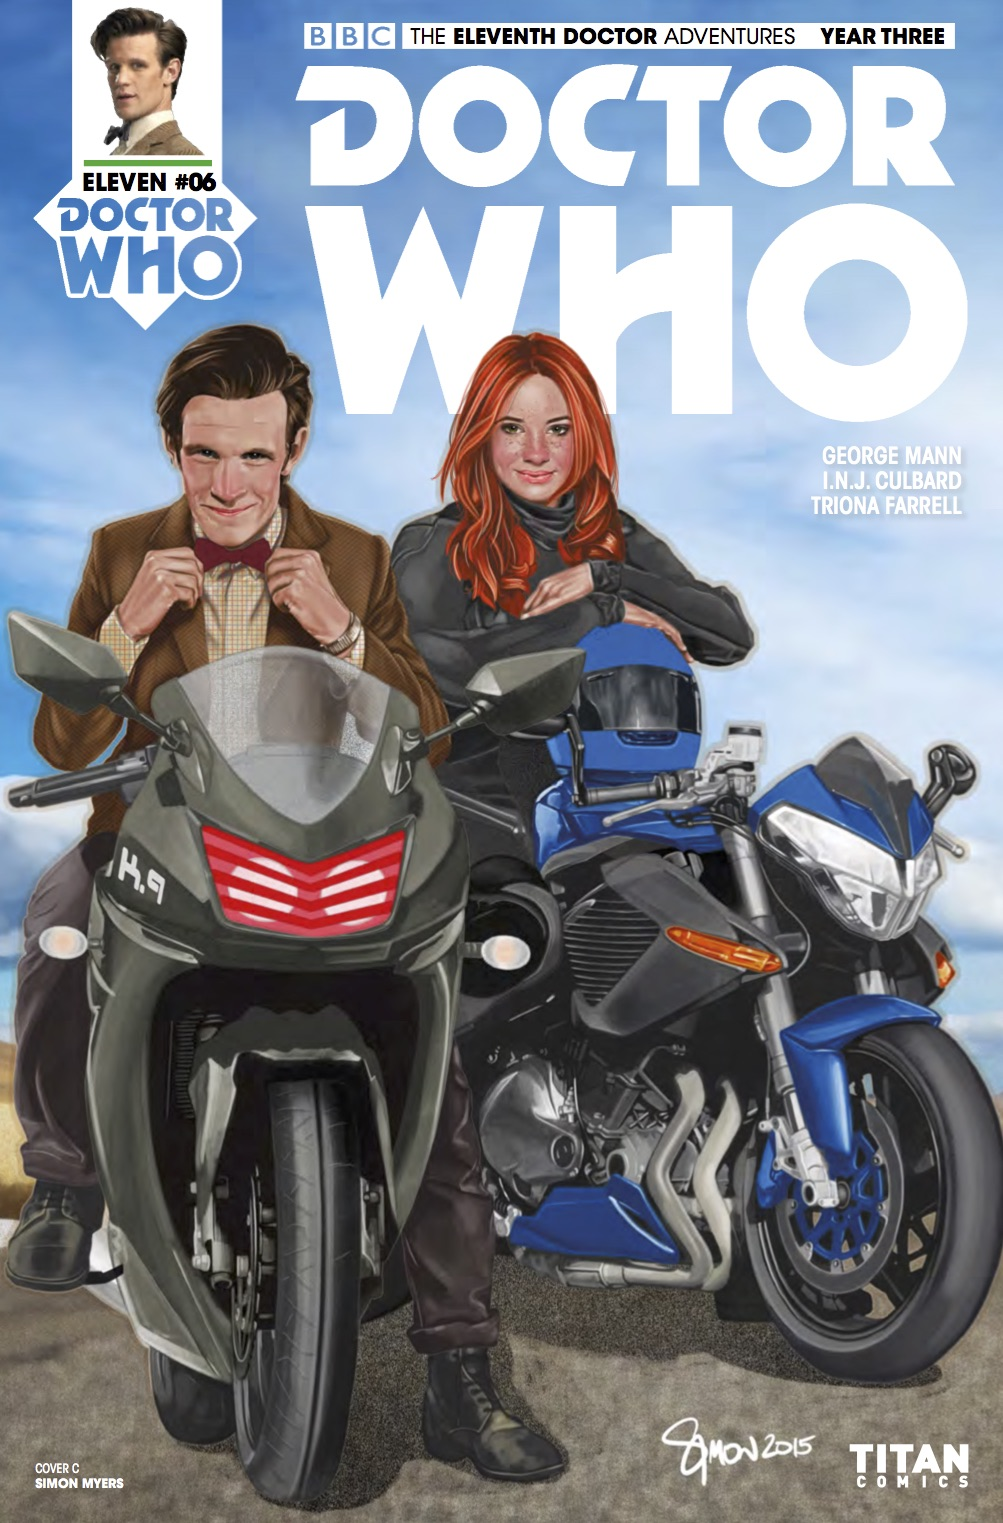 TITAN COMICS - DOCTOR WHO: ELEVENTH DOCTOR YEAR 3 #6 Cover C: Simon Myers